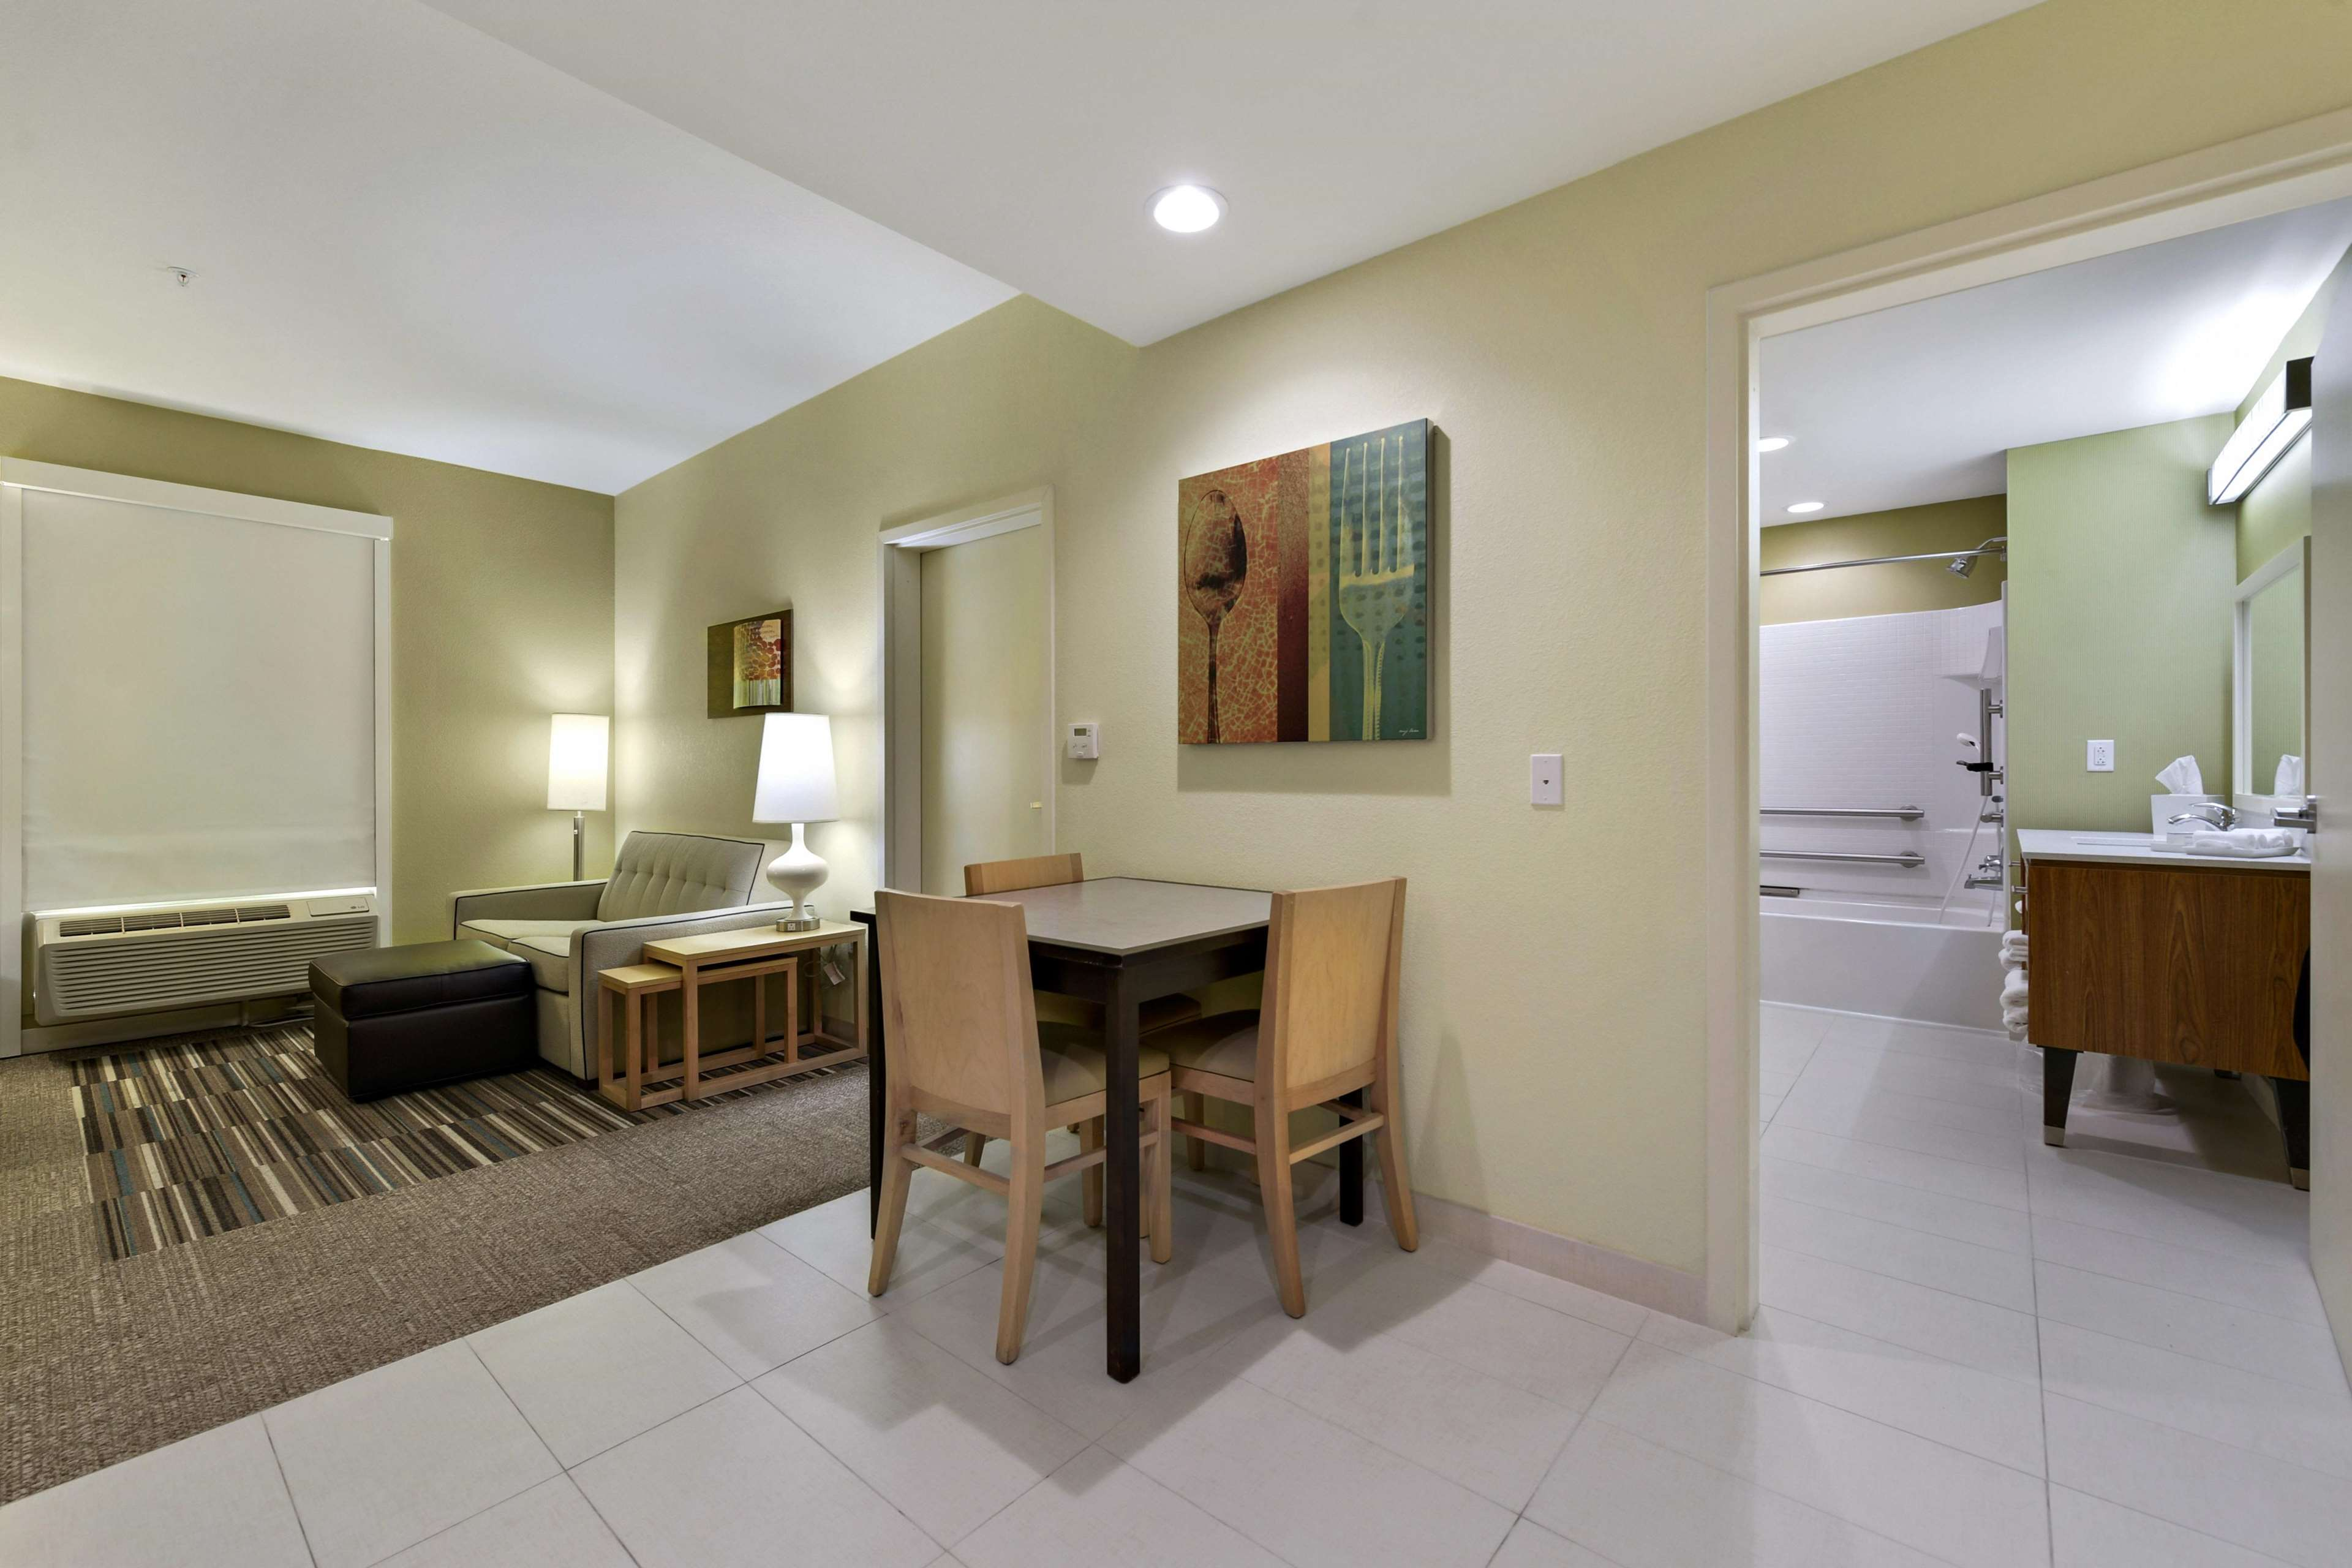 Home2 Suites by Hilton Gulfport I-10 image 23